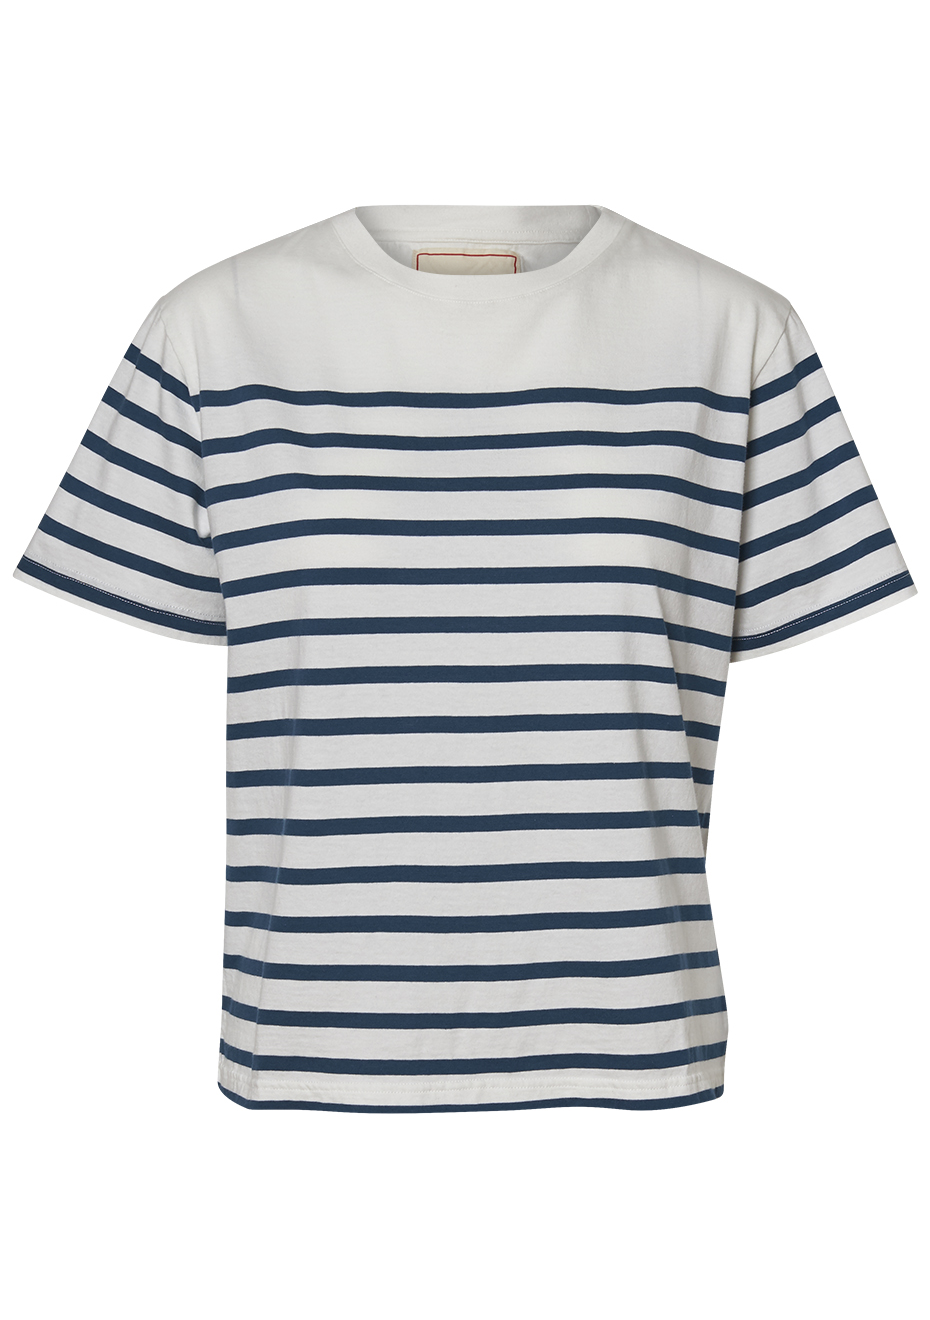 Luz 120 Navy Stripe Tee